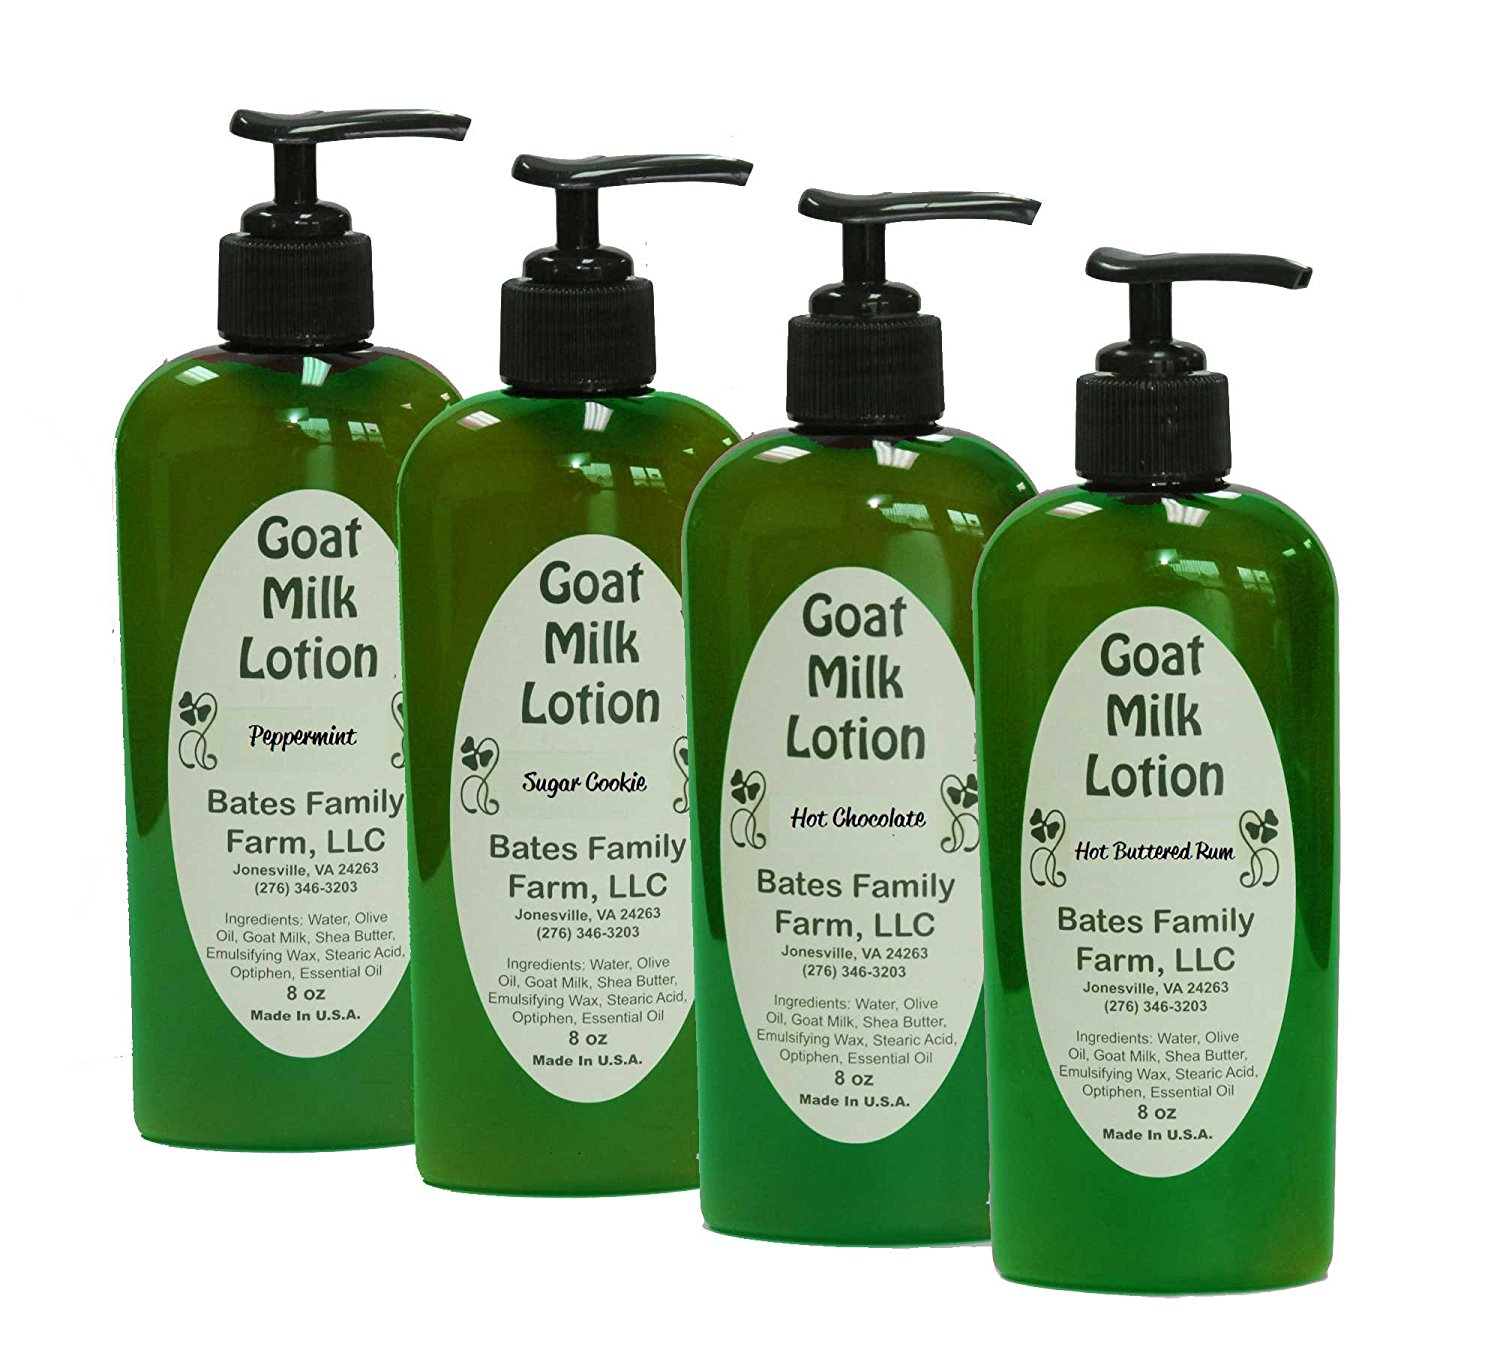 Winter Goat Milk Lotion Moisturizer Variety Gift Set: Sugar Cookie, Hot Chocolate, Peppermint, Hot Buttered Rum 8 Ounce Bottles